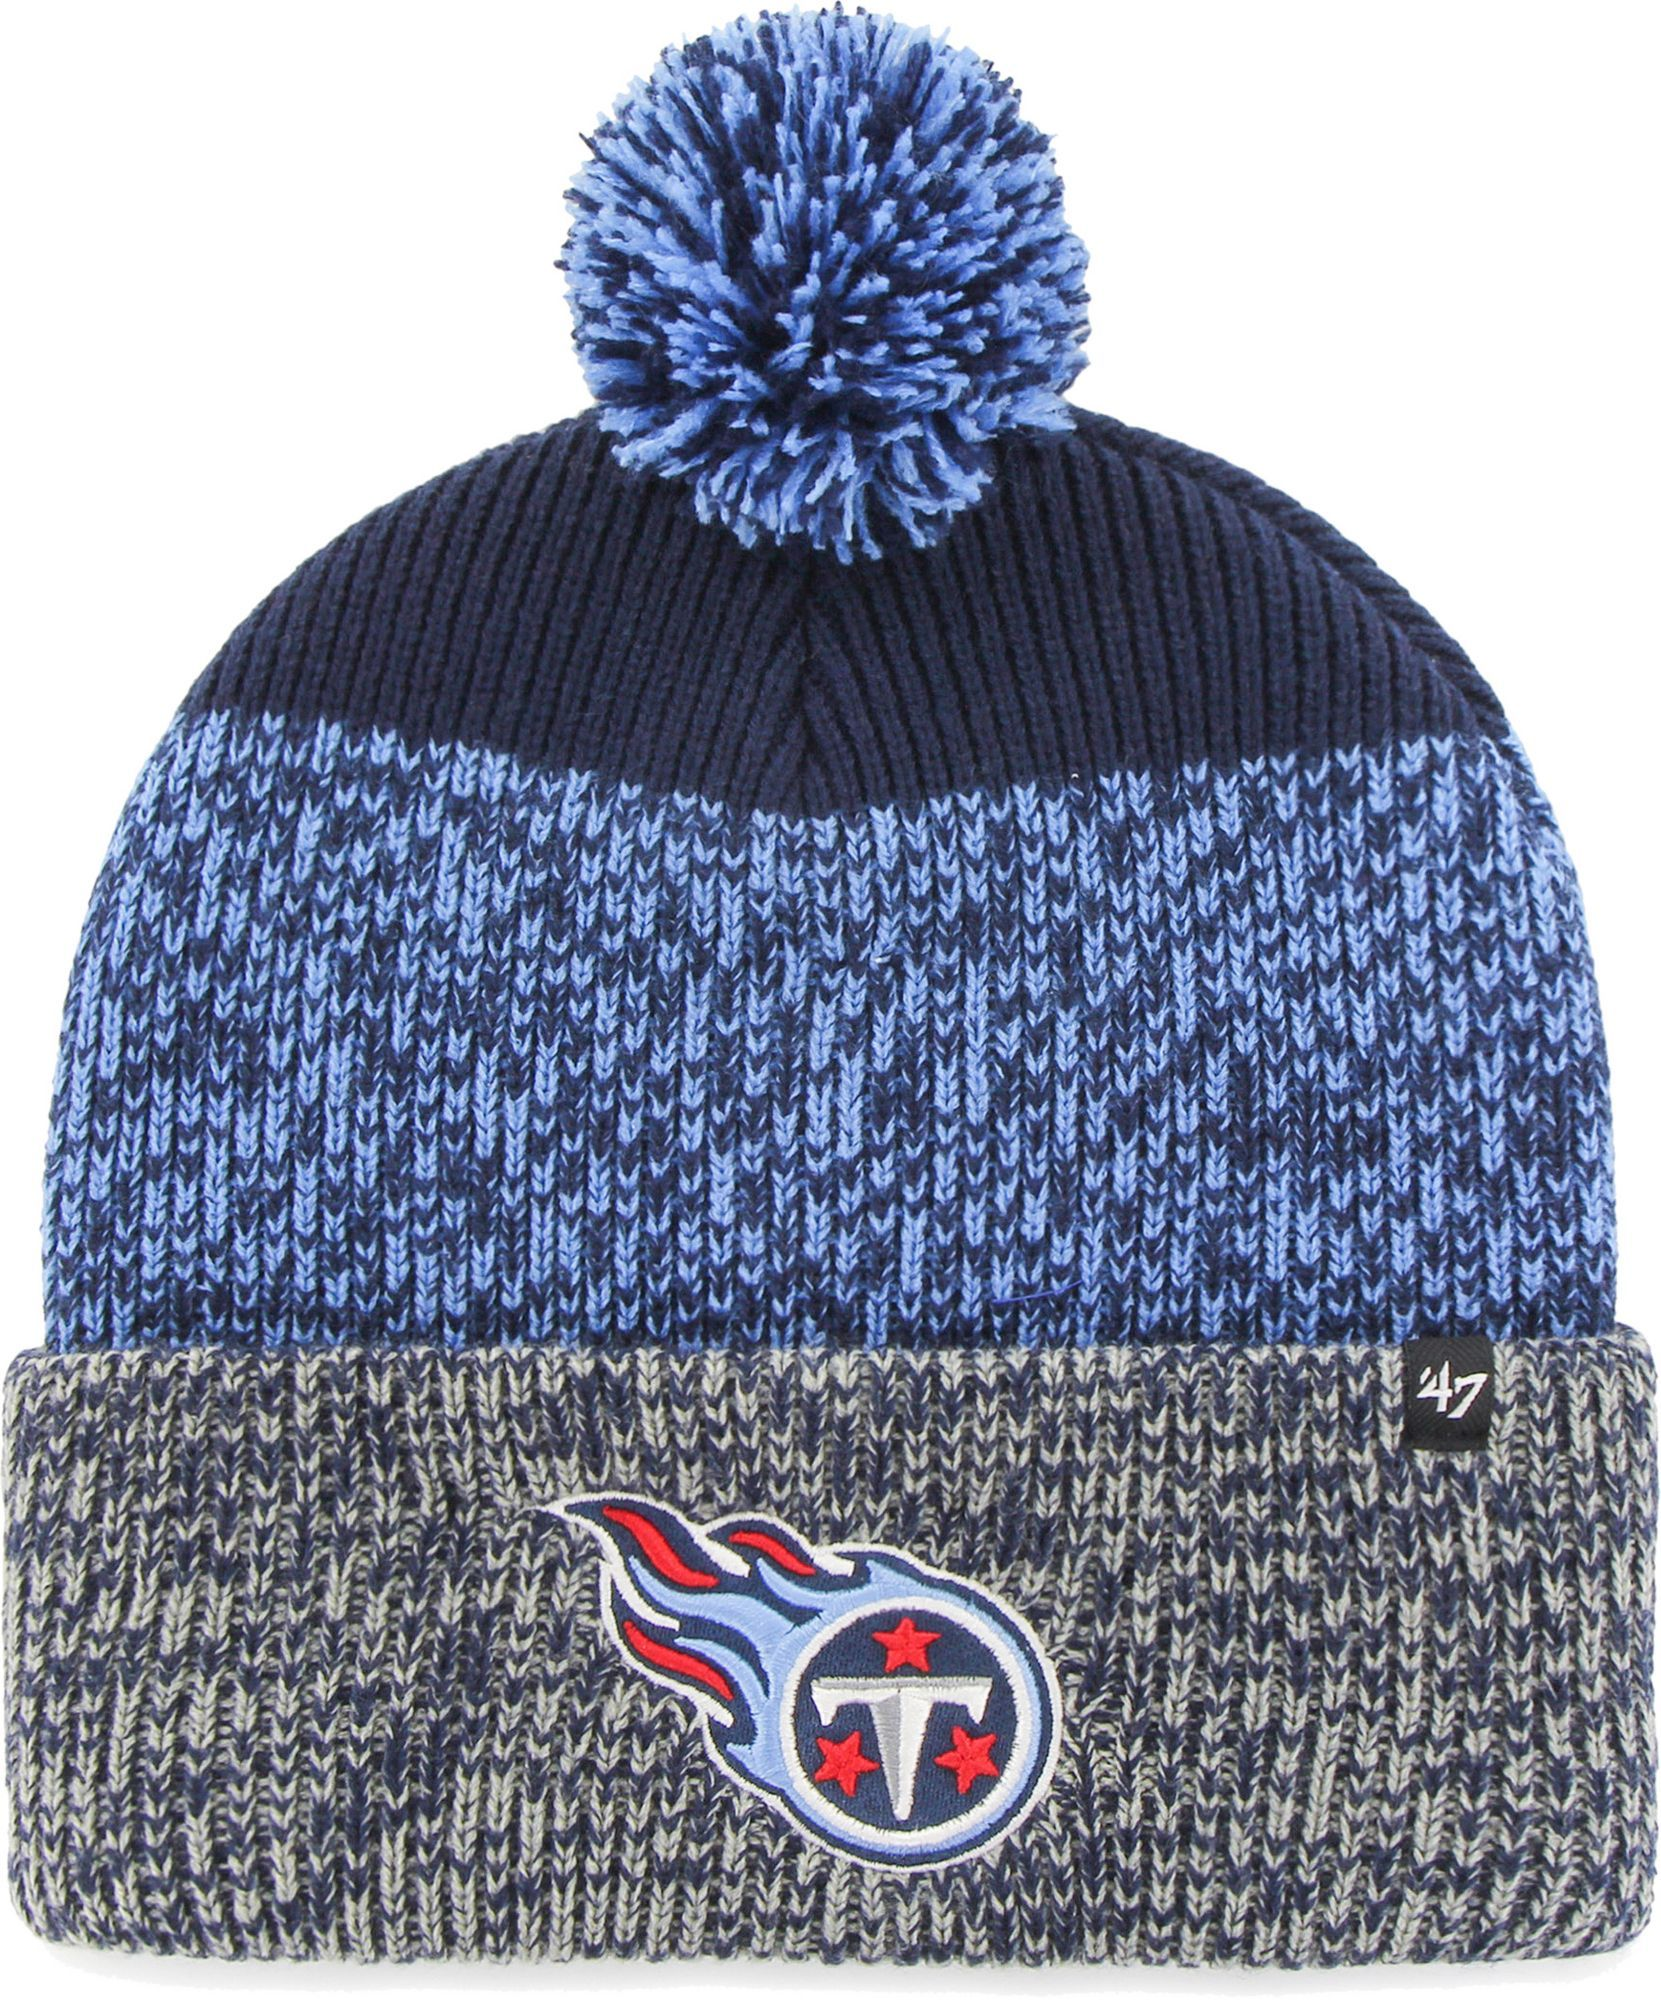 30e467d3fb18d8 47 Men's Tennessee Static Cuffed Knit | Products | Winter knit hats ...